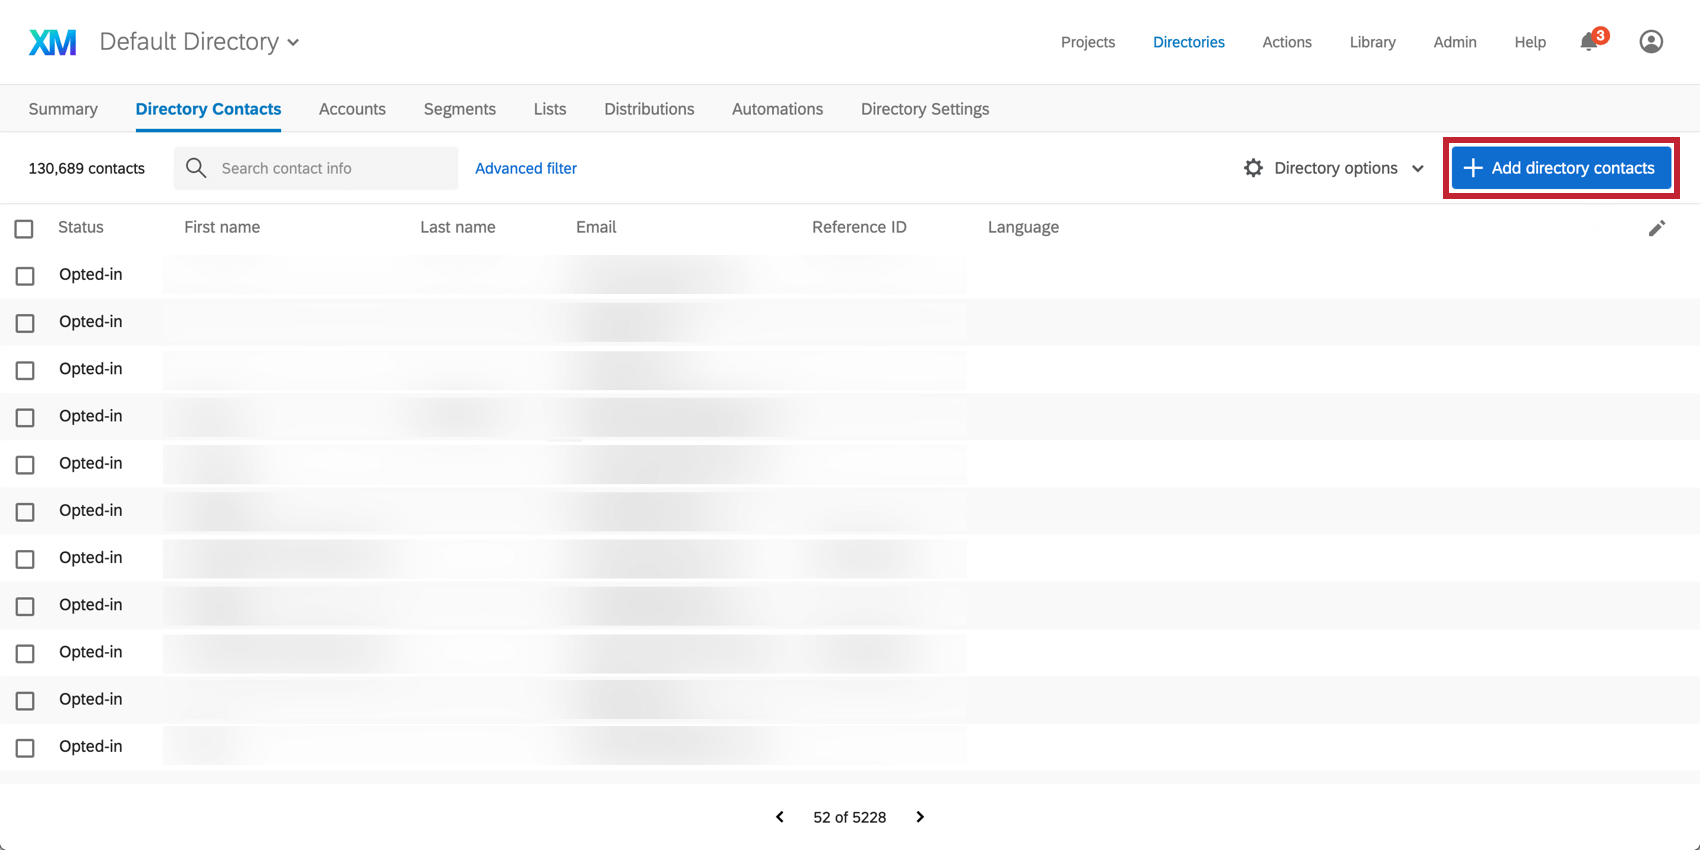 Add contacts to the directory button in the top right